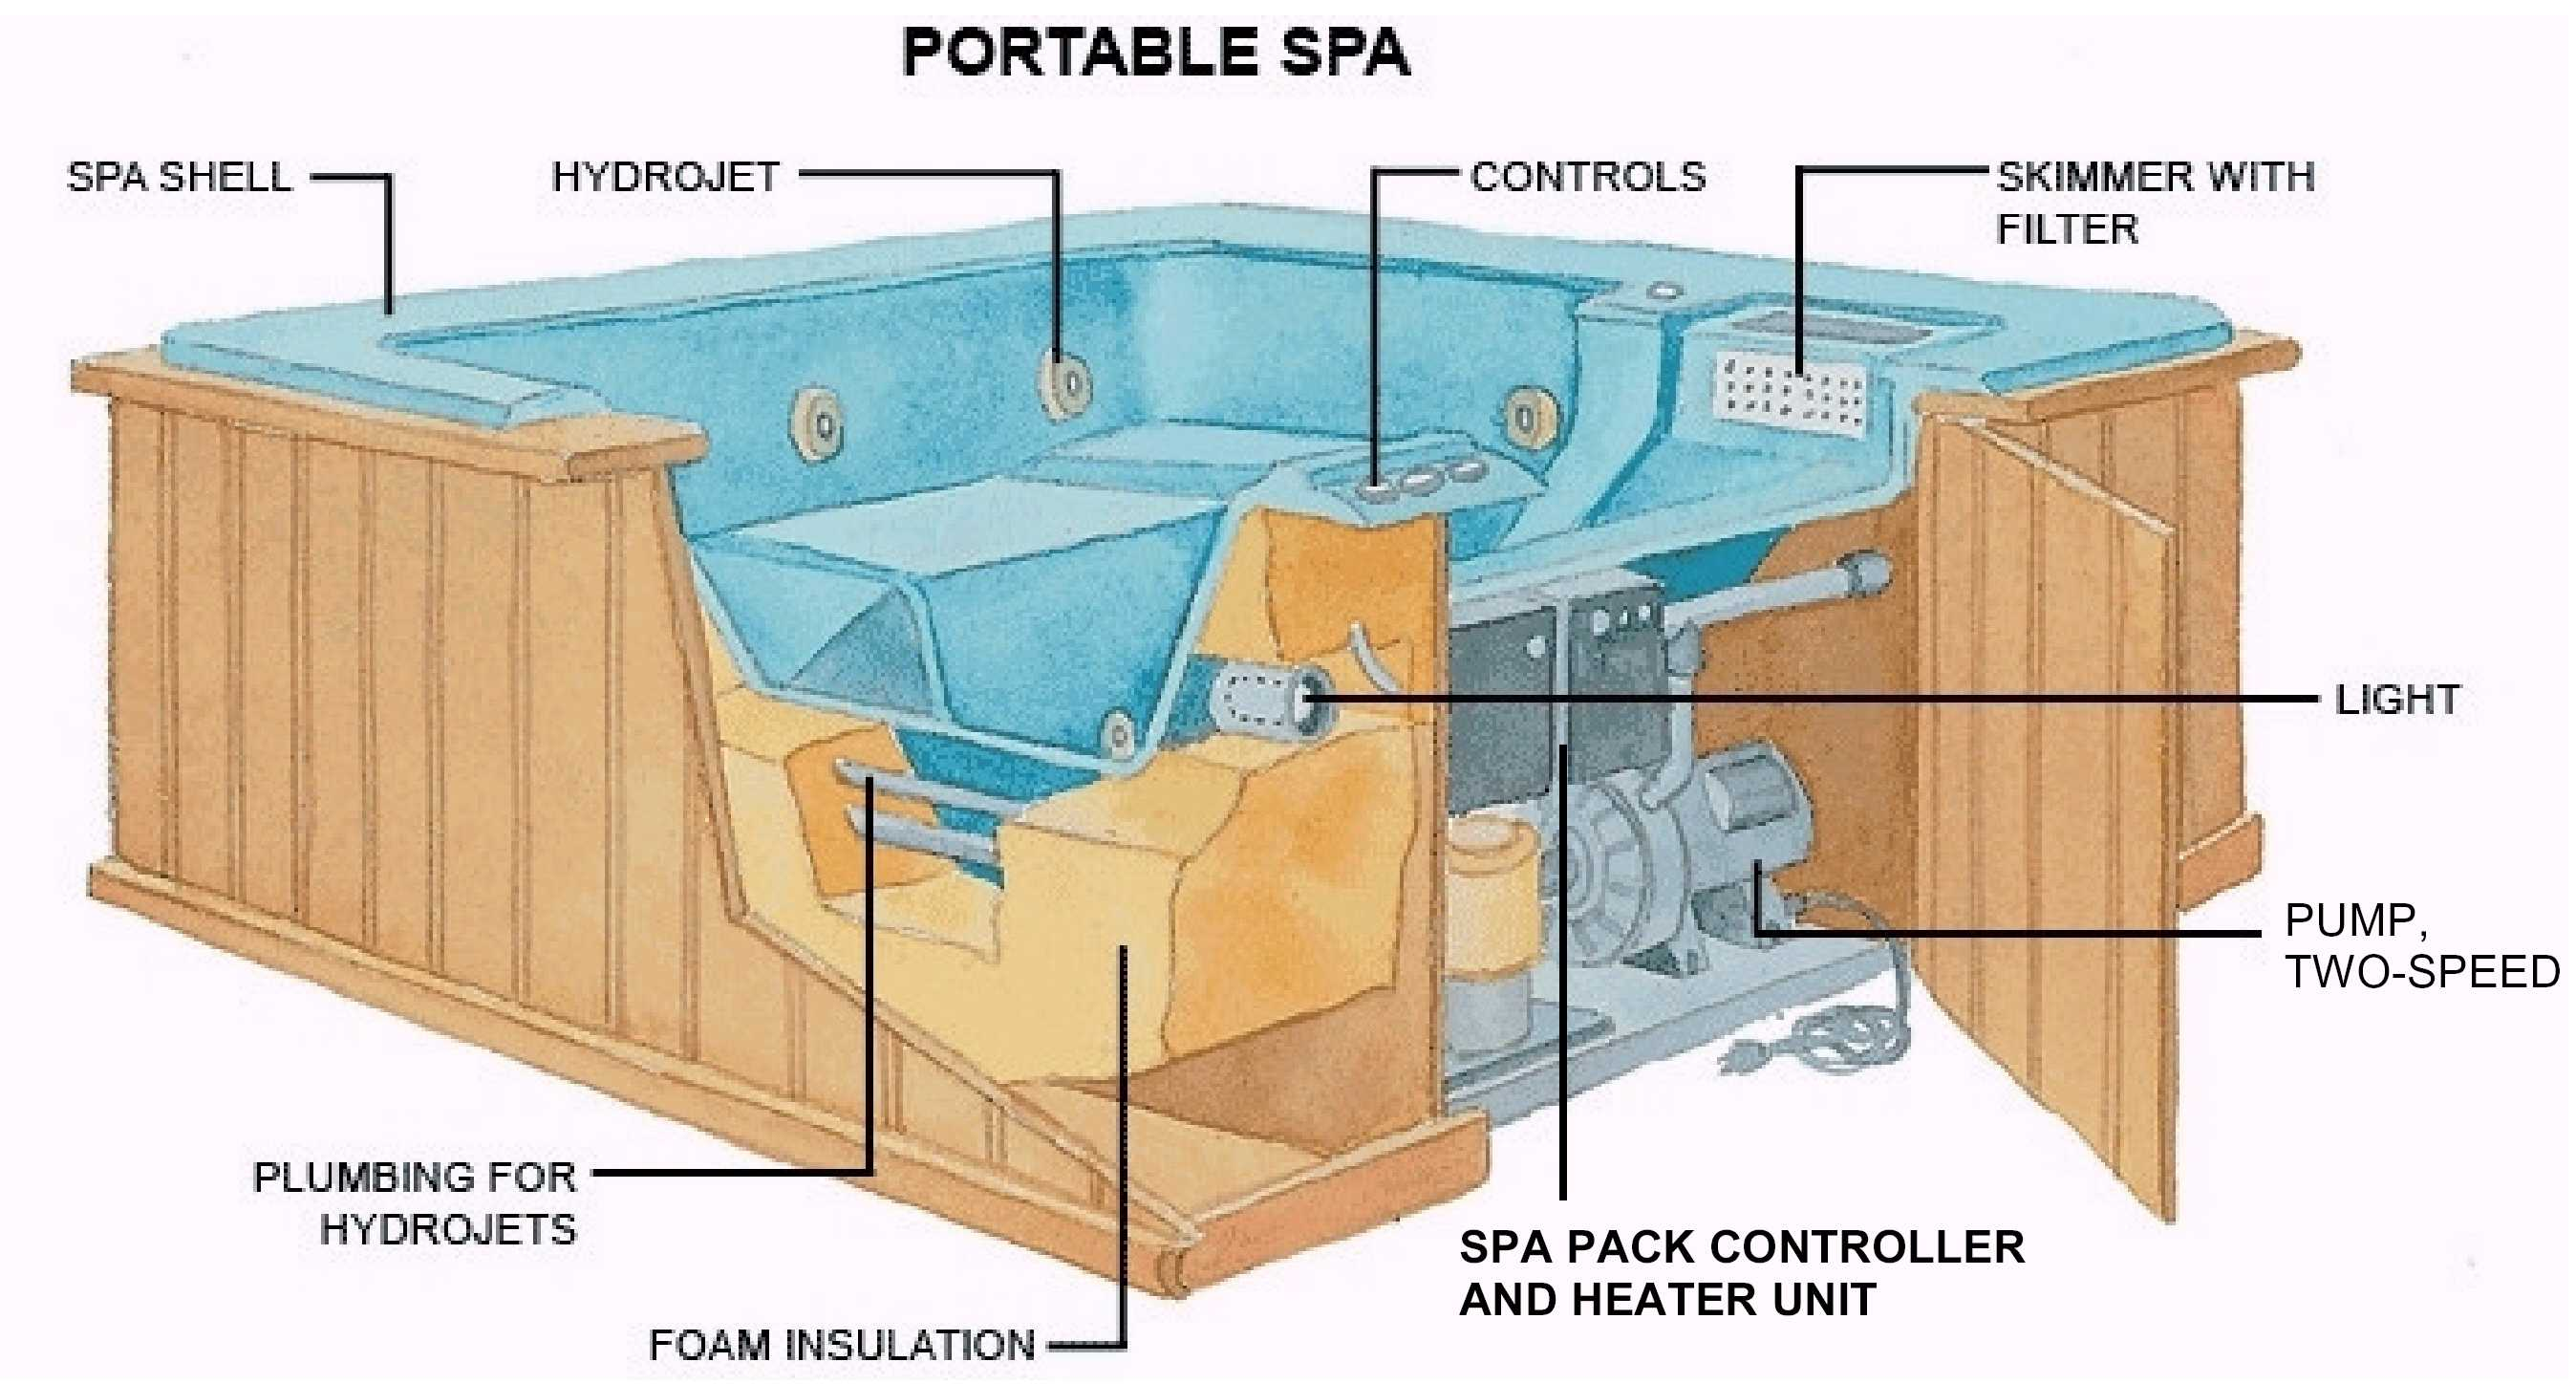 Spa Pack Wiring Diagram